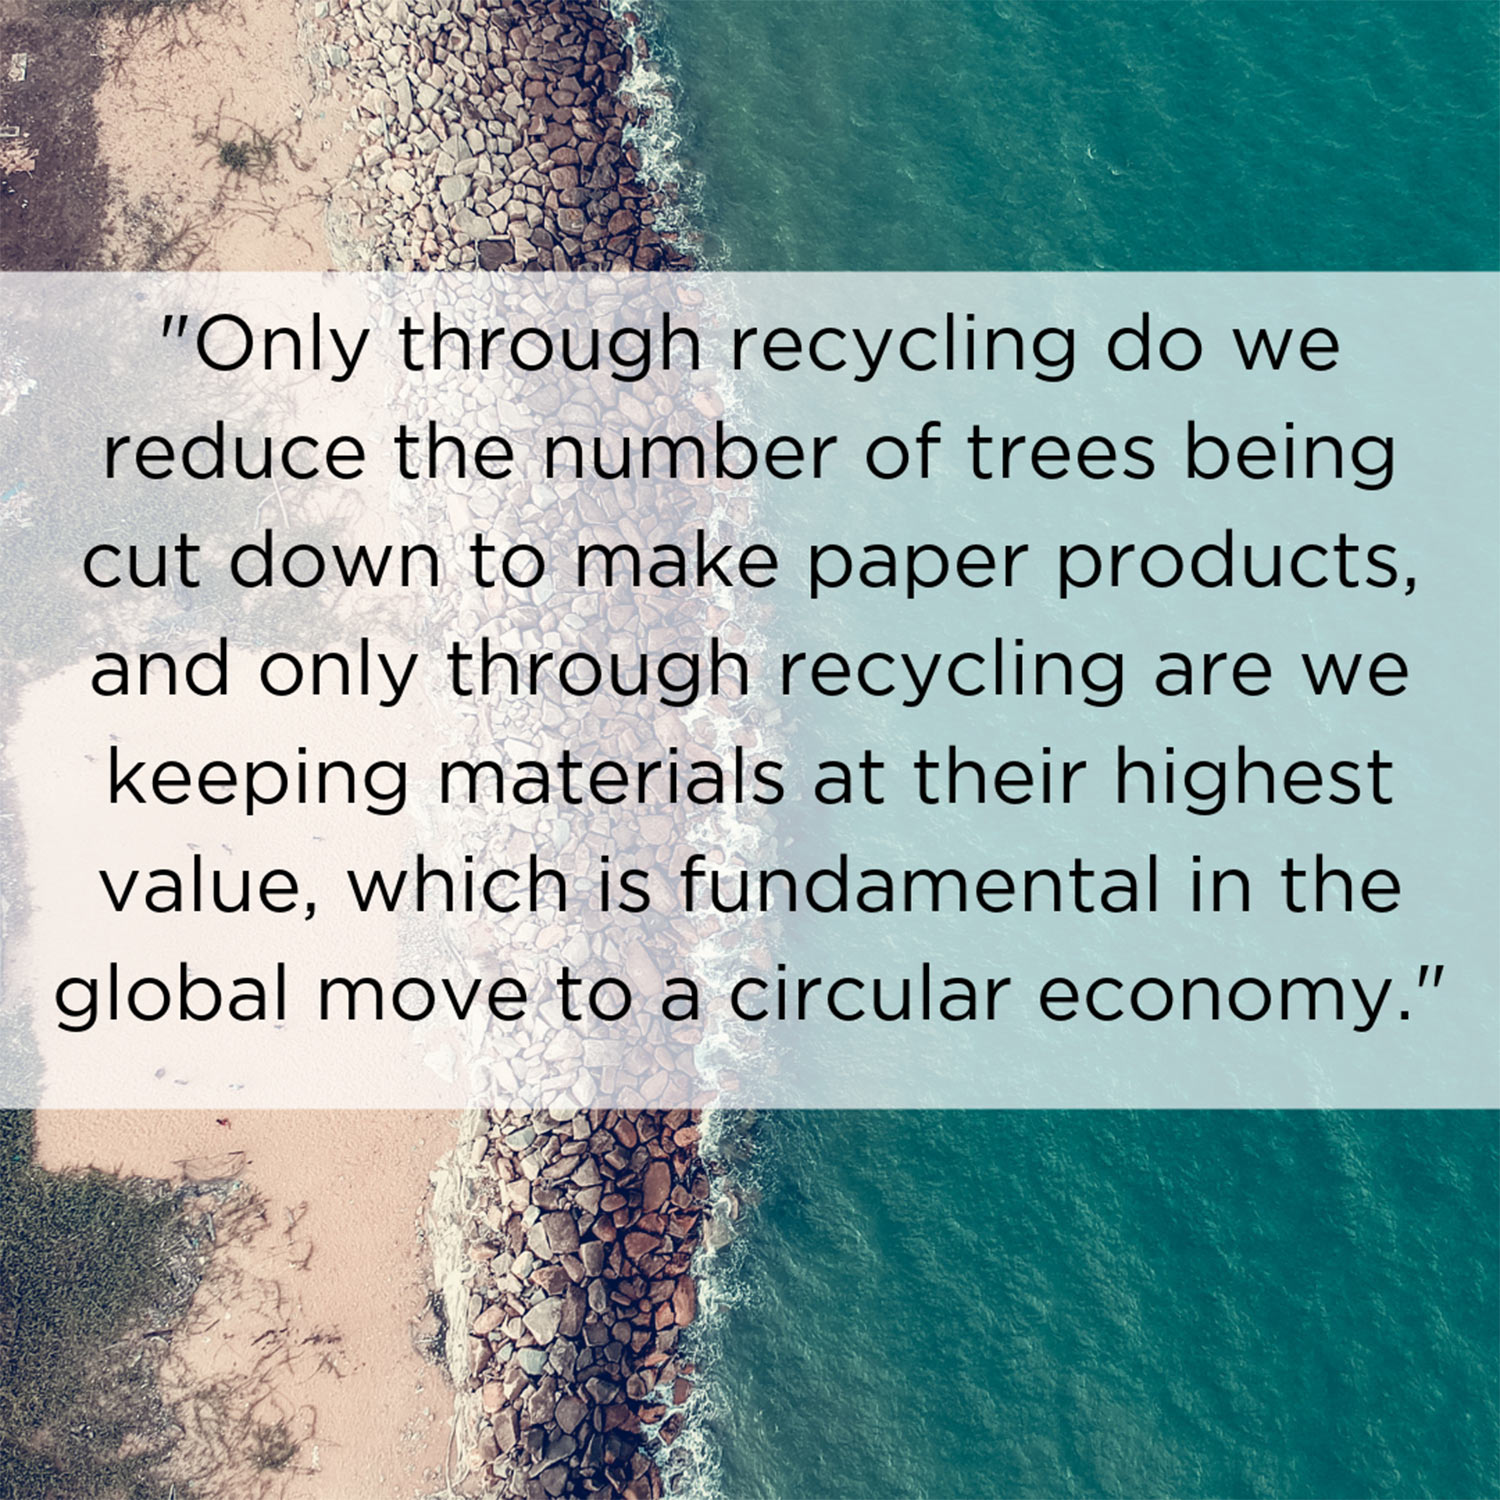 Image saying Only through recycling do we reduce the number of trees being cut down to make paper products quote